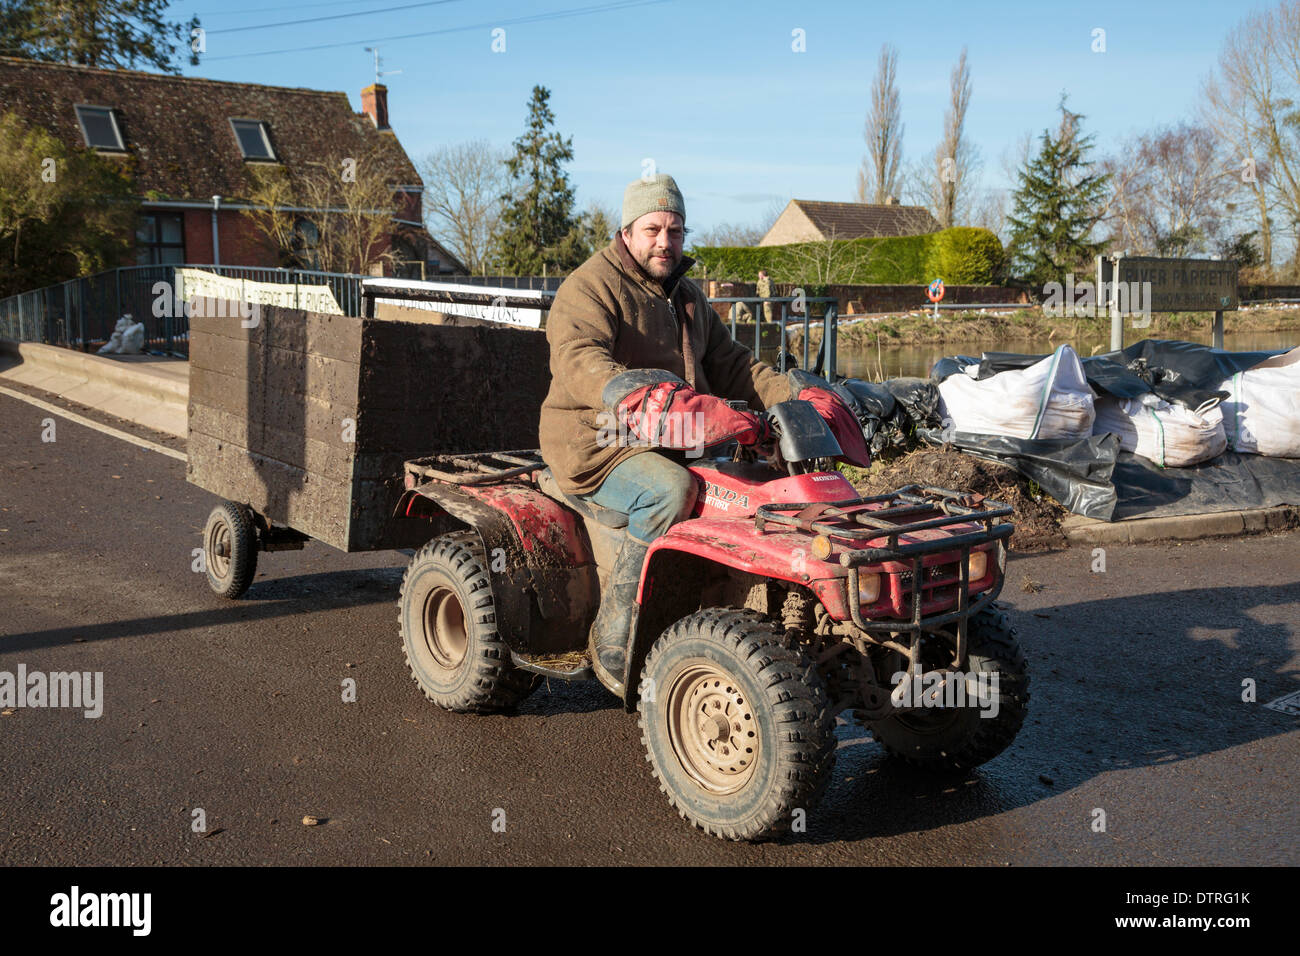 Pub landlord Jim Winkworth uses a quad bike with trailer to deliver supplies and rescue animals from the heavy floods at Burrowbridge on February 22, 2014. As landlord of the King Alfred Inn, he has also been at risk of flooding but has been helping his locals with errands throughout the crisis, visiting local villages of Moorland and Fordgate by travelling along the banks of the River Parrett. - Stock Image